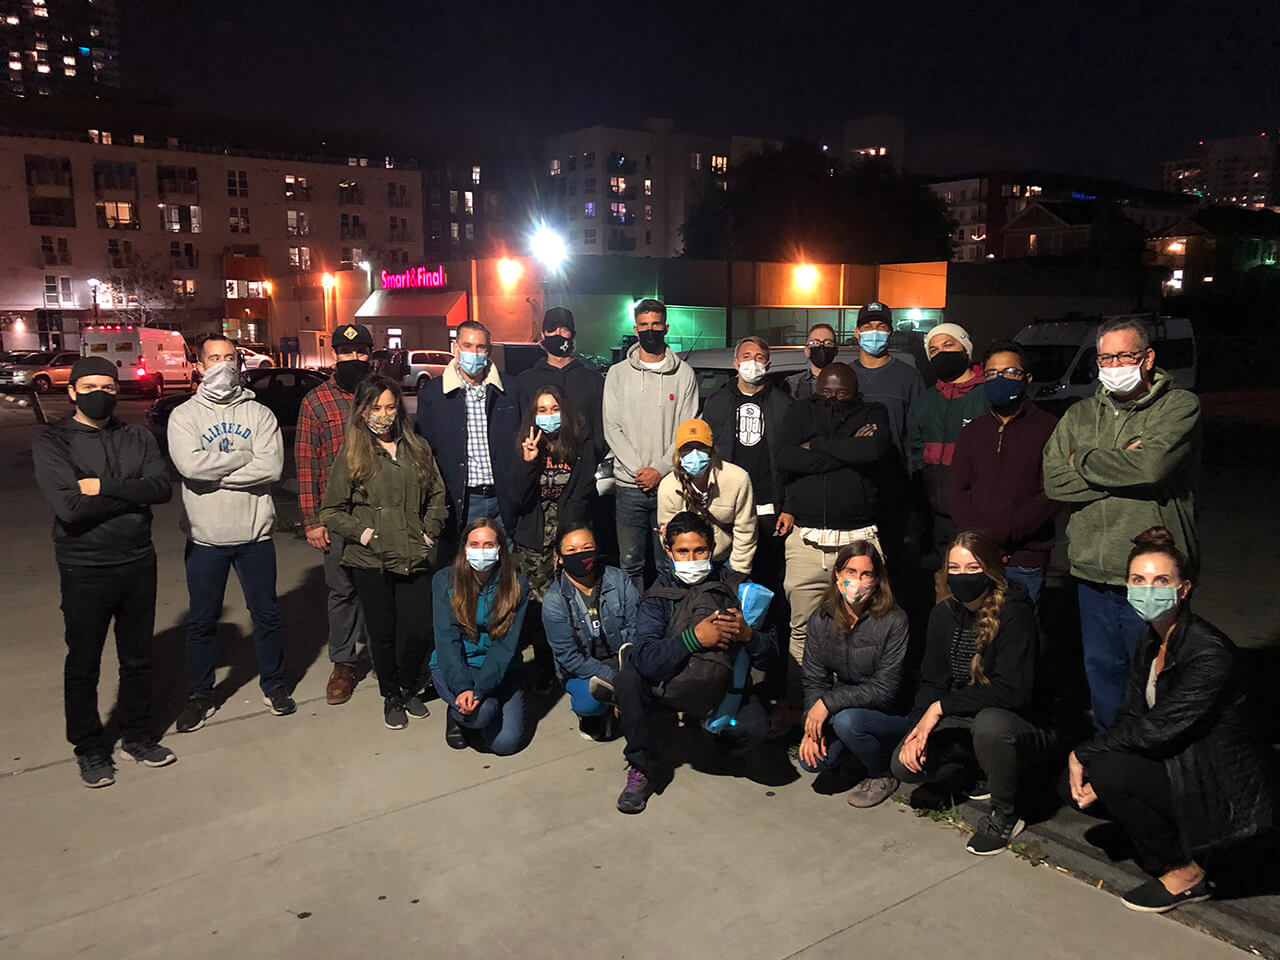 San Diego's Professional Soccer Team SD Loyal Feeds the Homeless